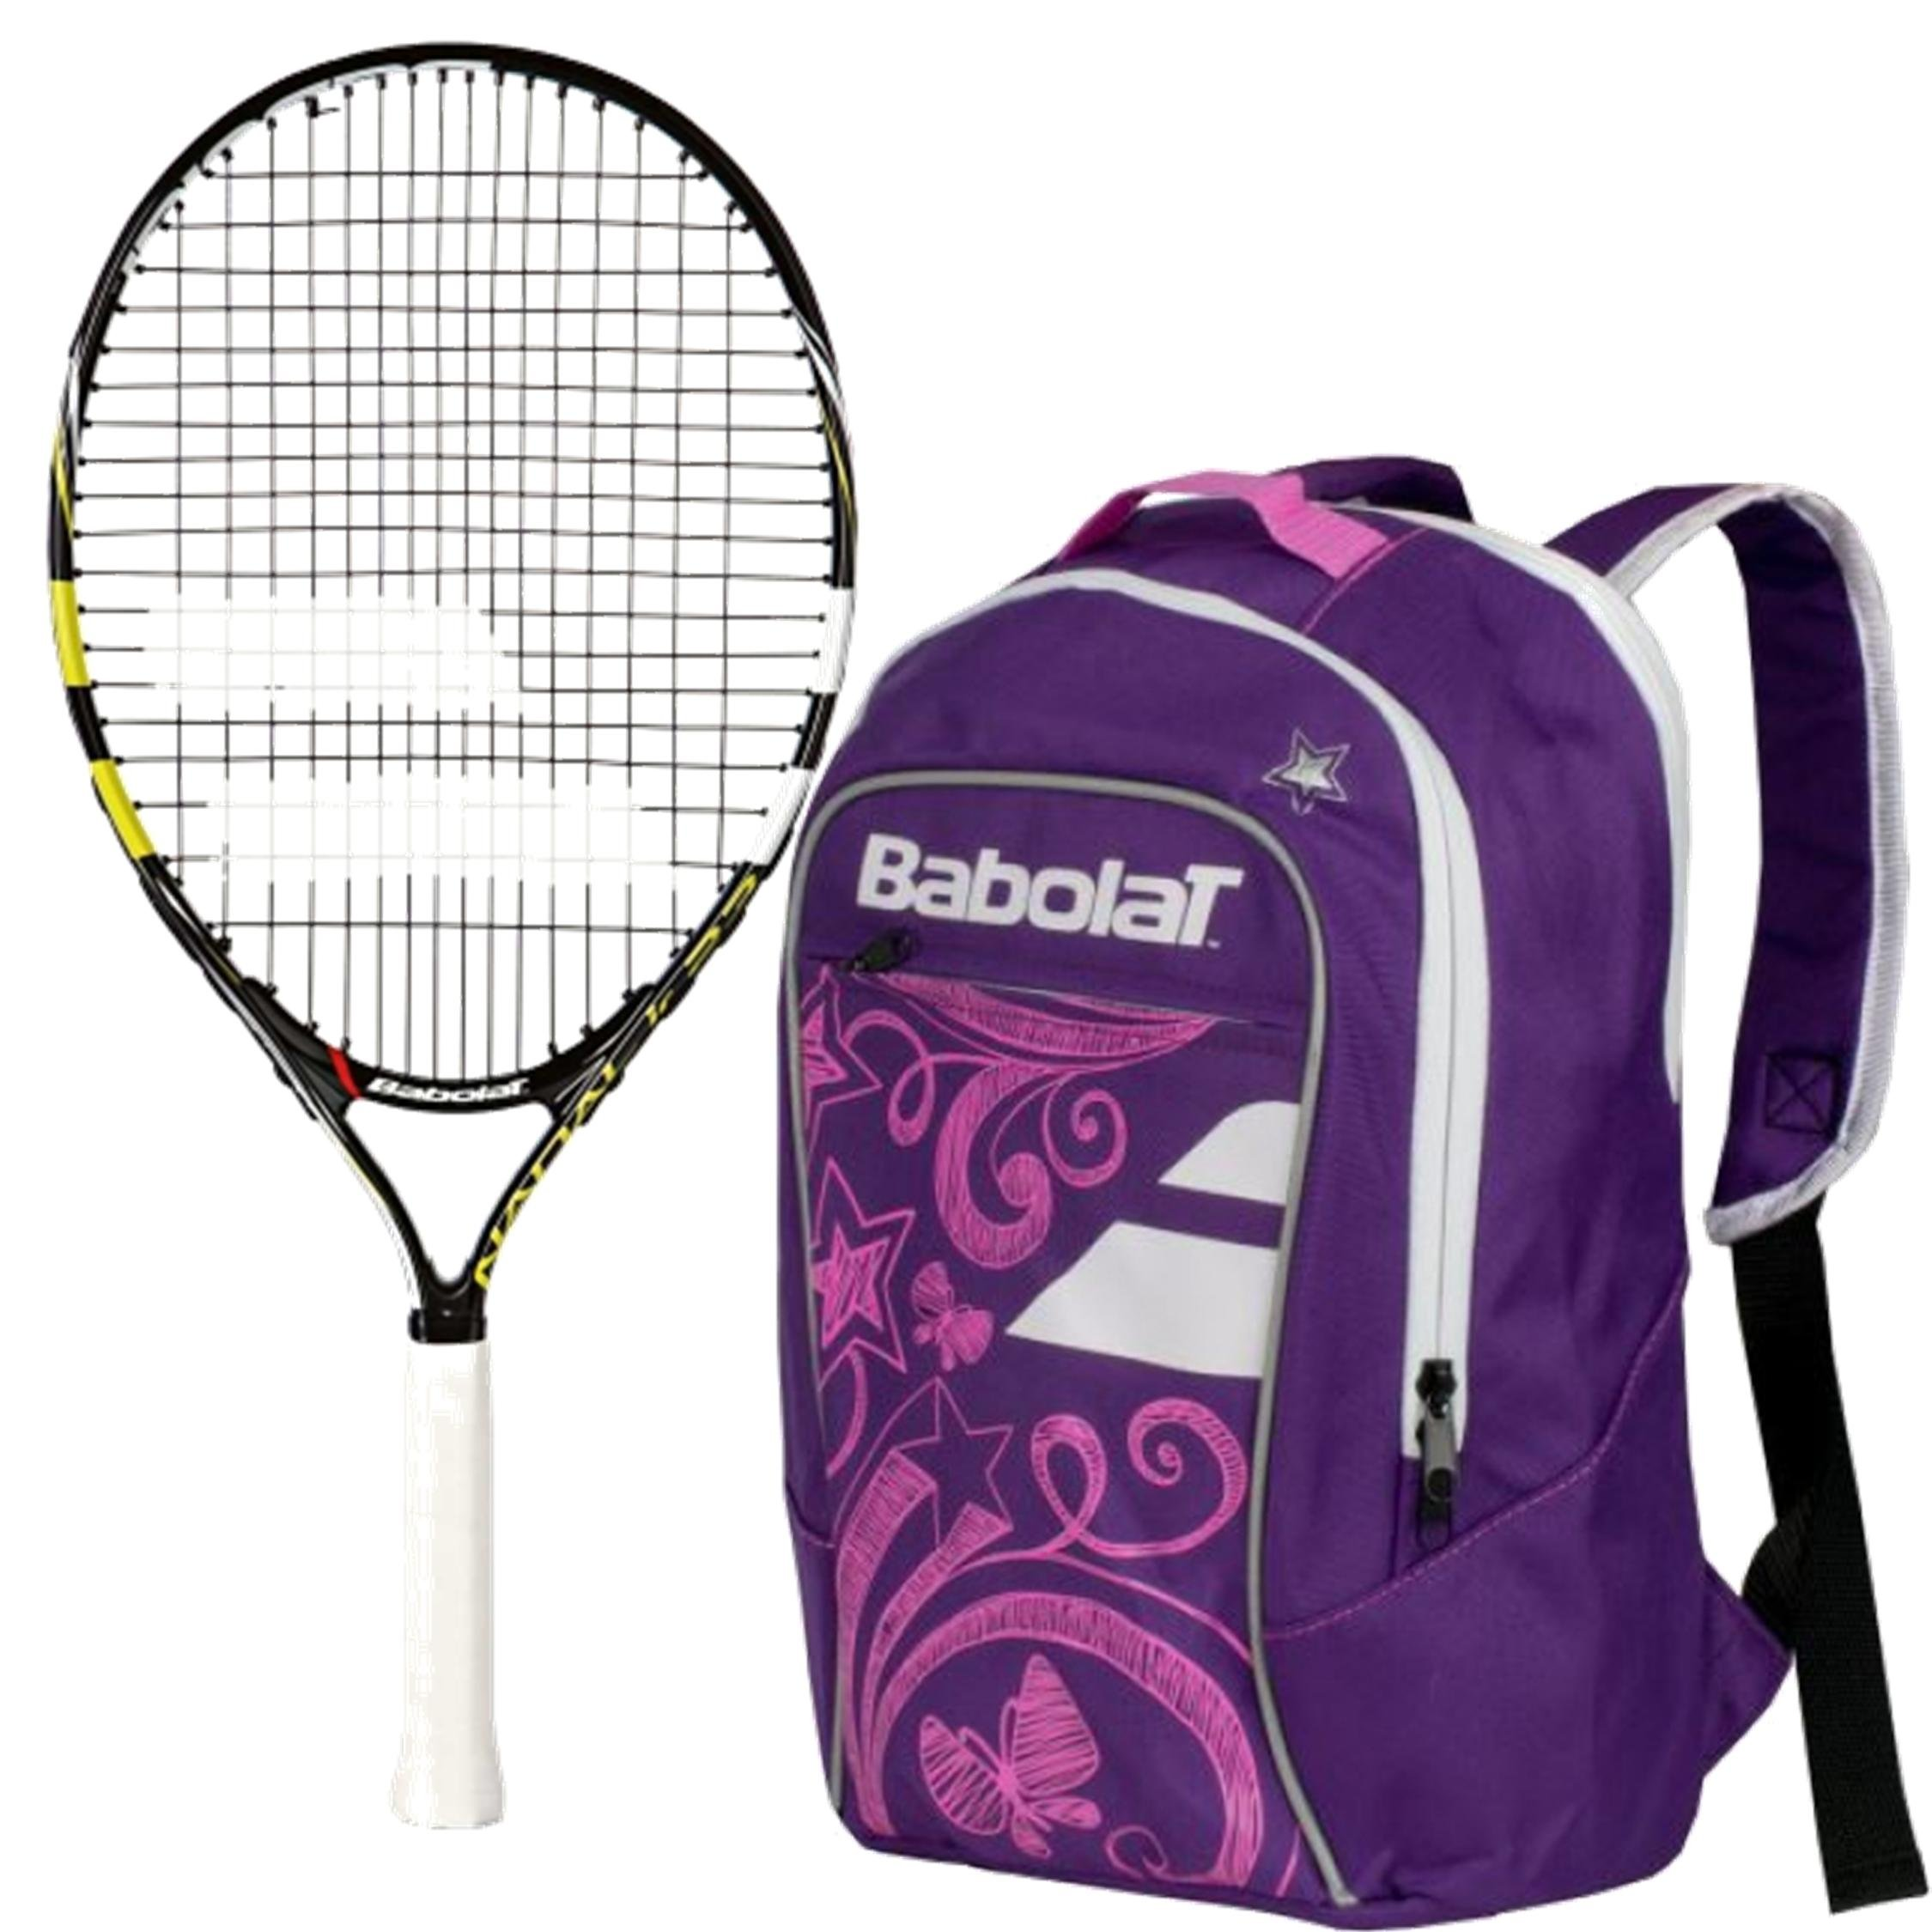 Babolat Nadal Junior 23'' Tennis Racquet (Yellow/Black/White) bundled with Girl's Club Tennis Backpack (Purple)